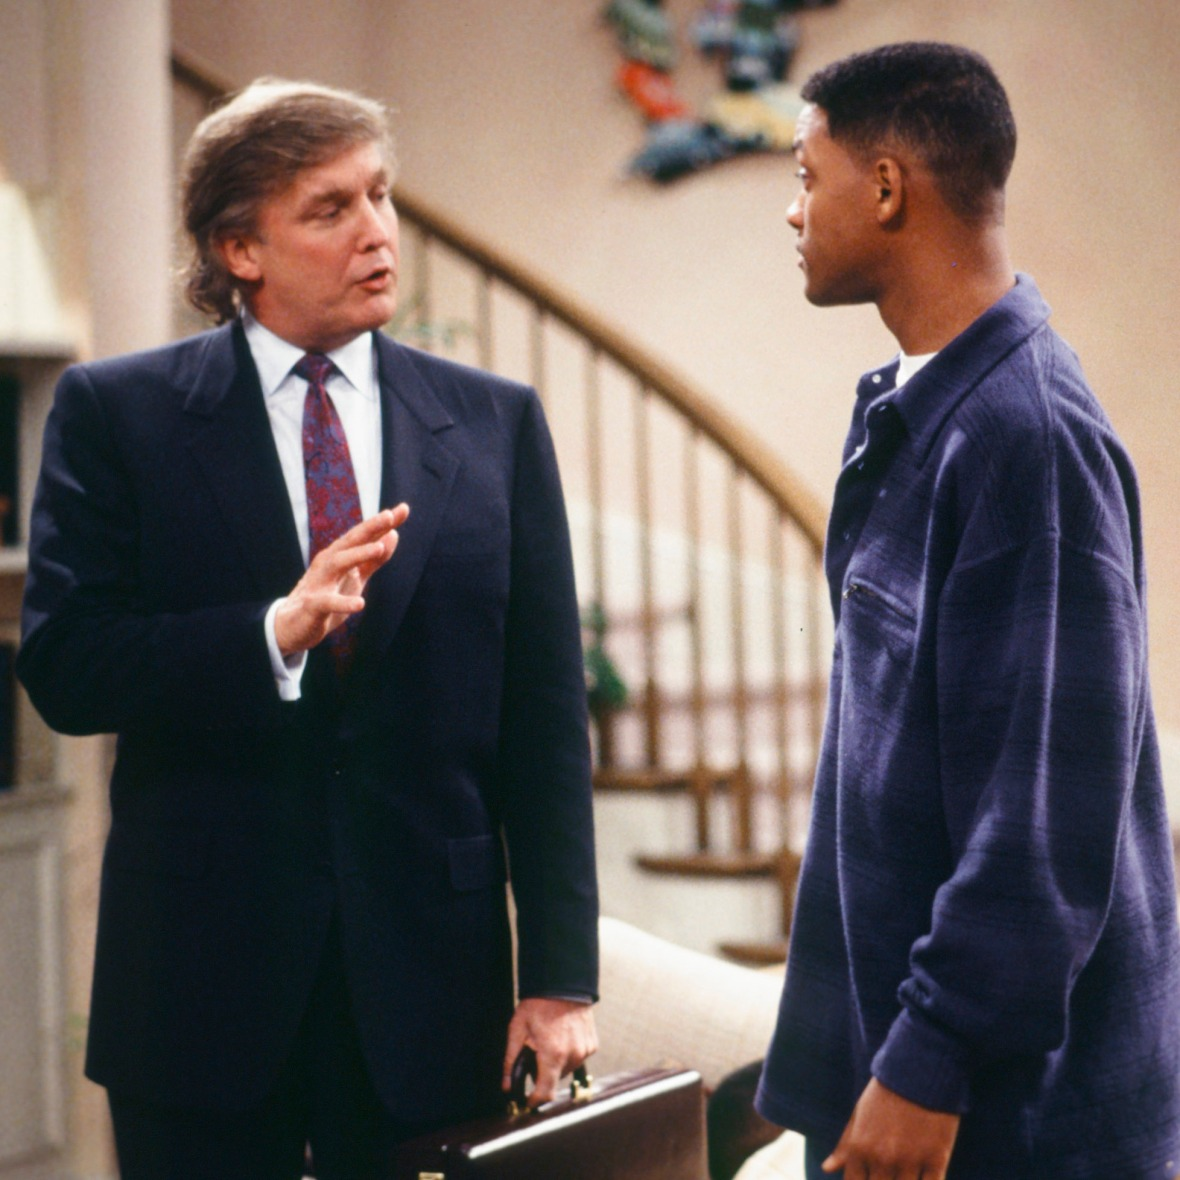 donald trump fresh prince of bel-air - getty